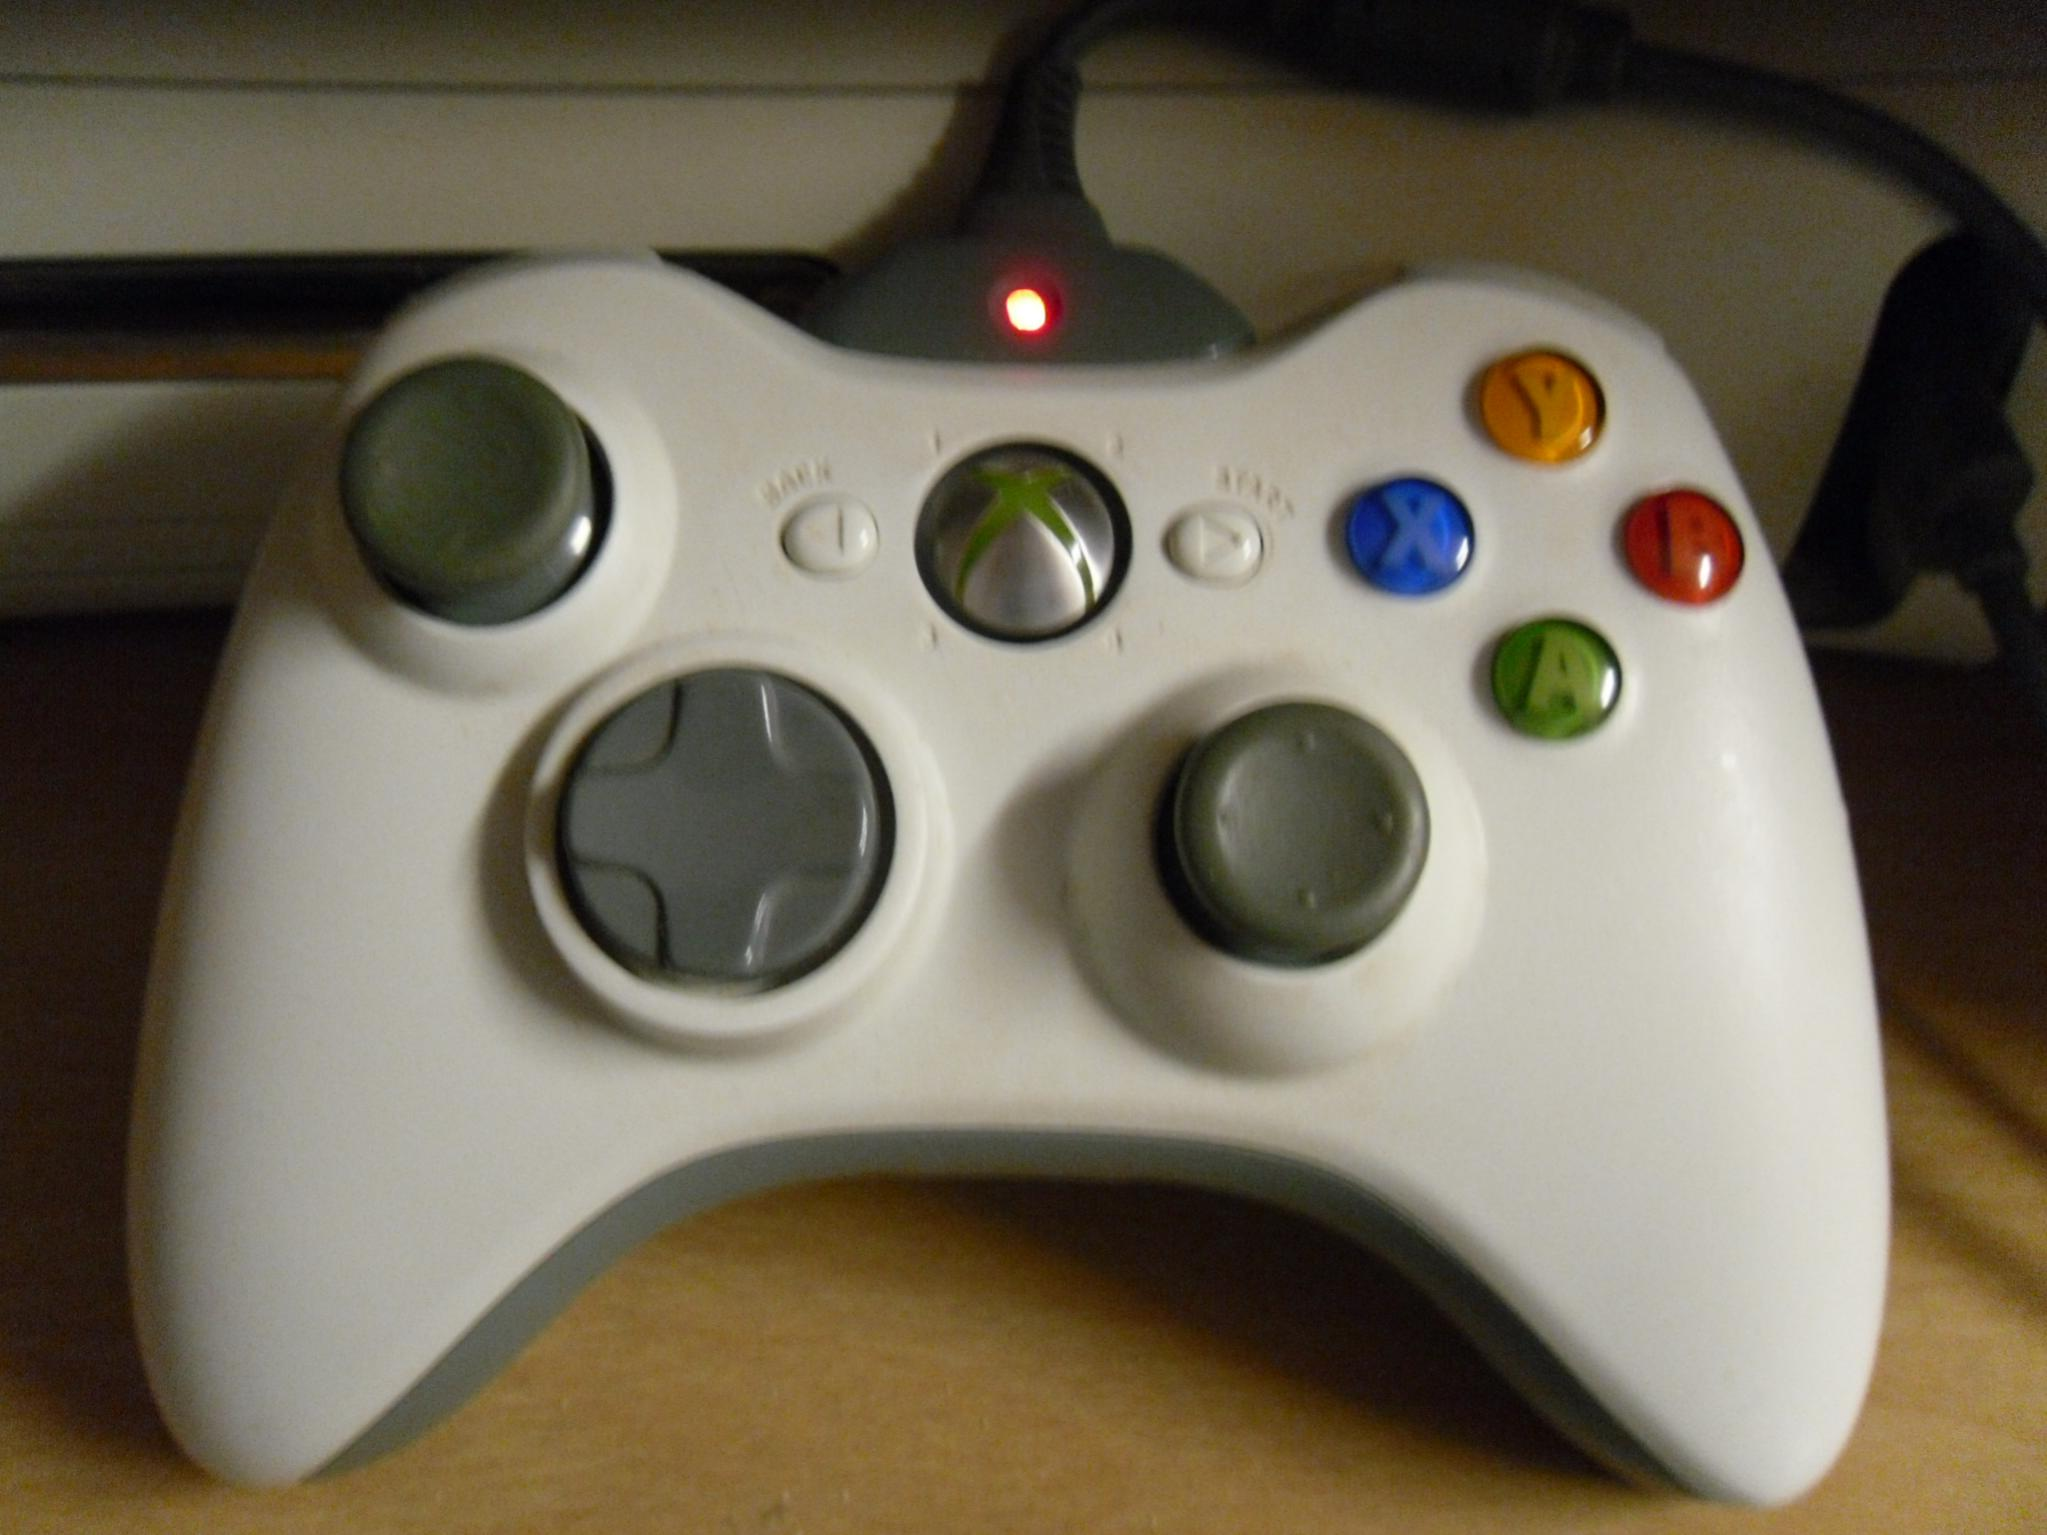 Play and Charge Kit Controller